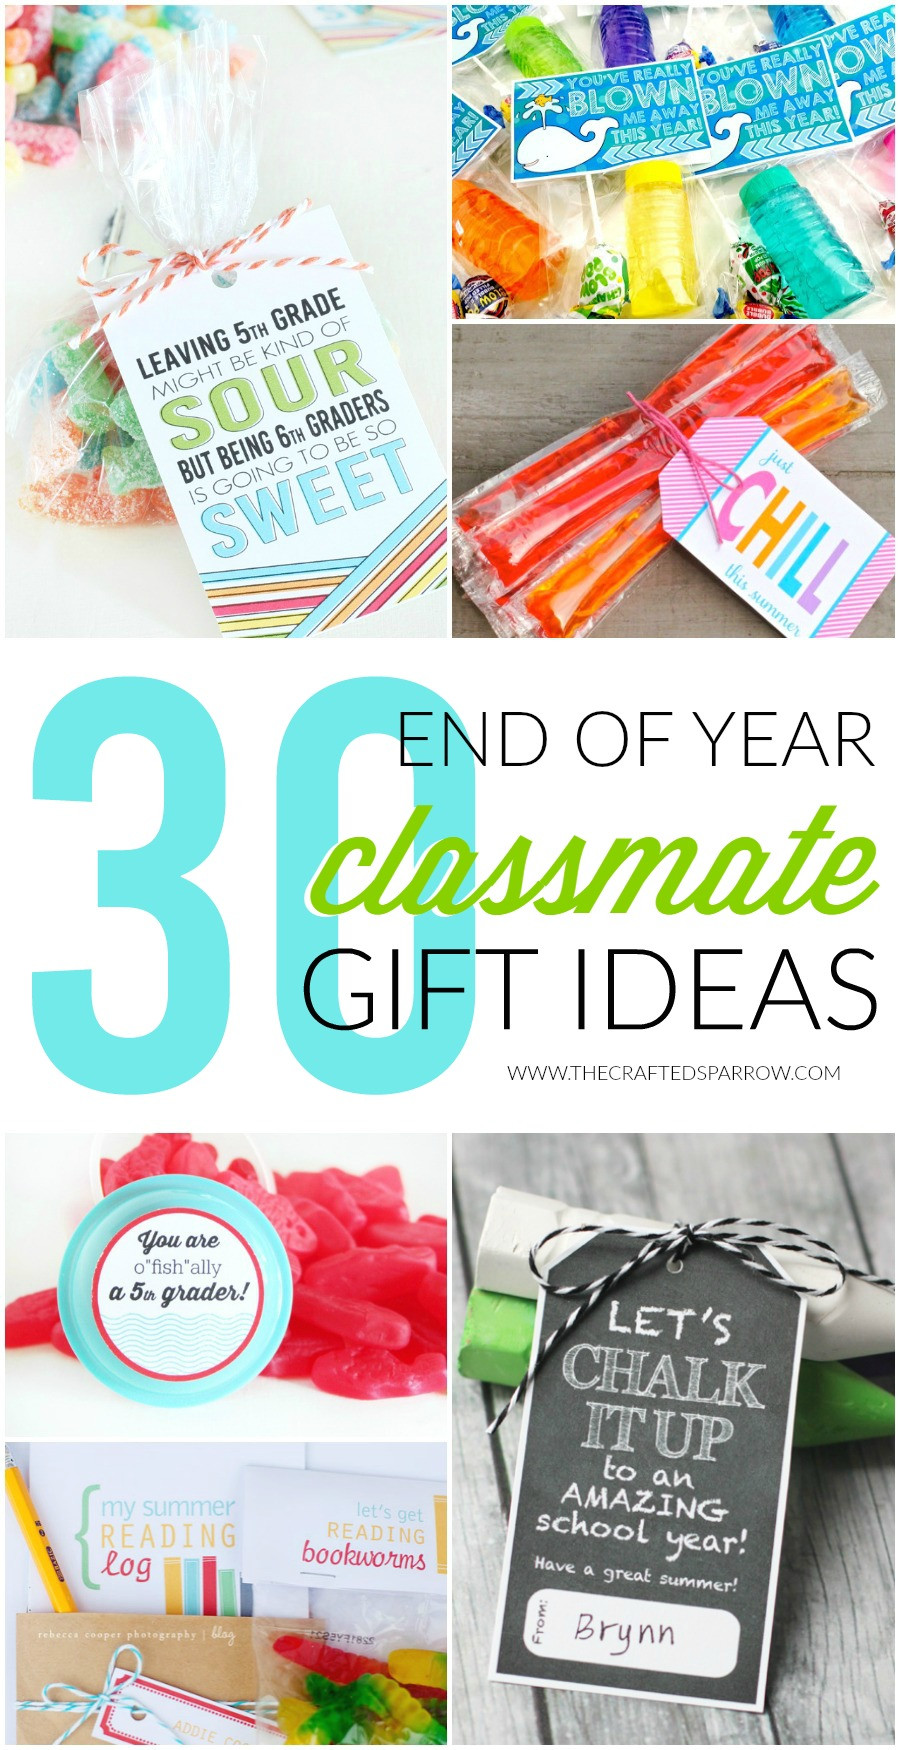 Best ideas about Class Gift Ideas . Save or Pin 30 End of Year Class Gift Ideas Now.